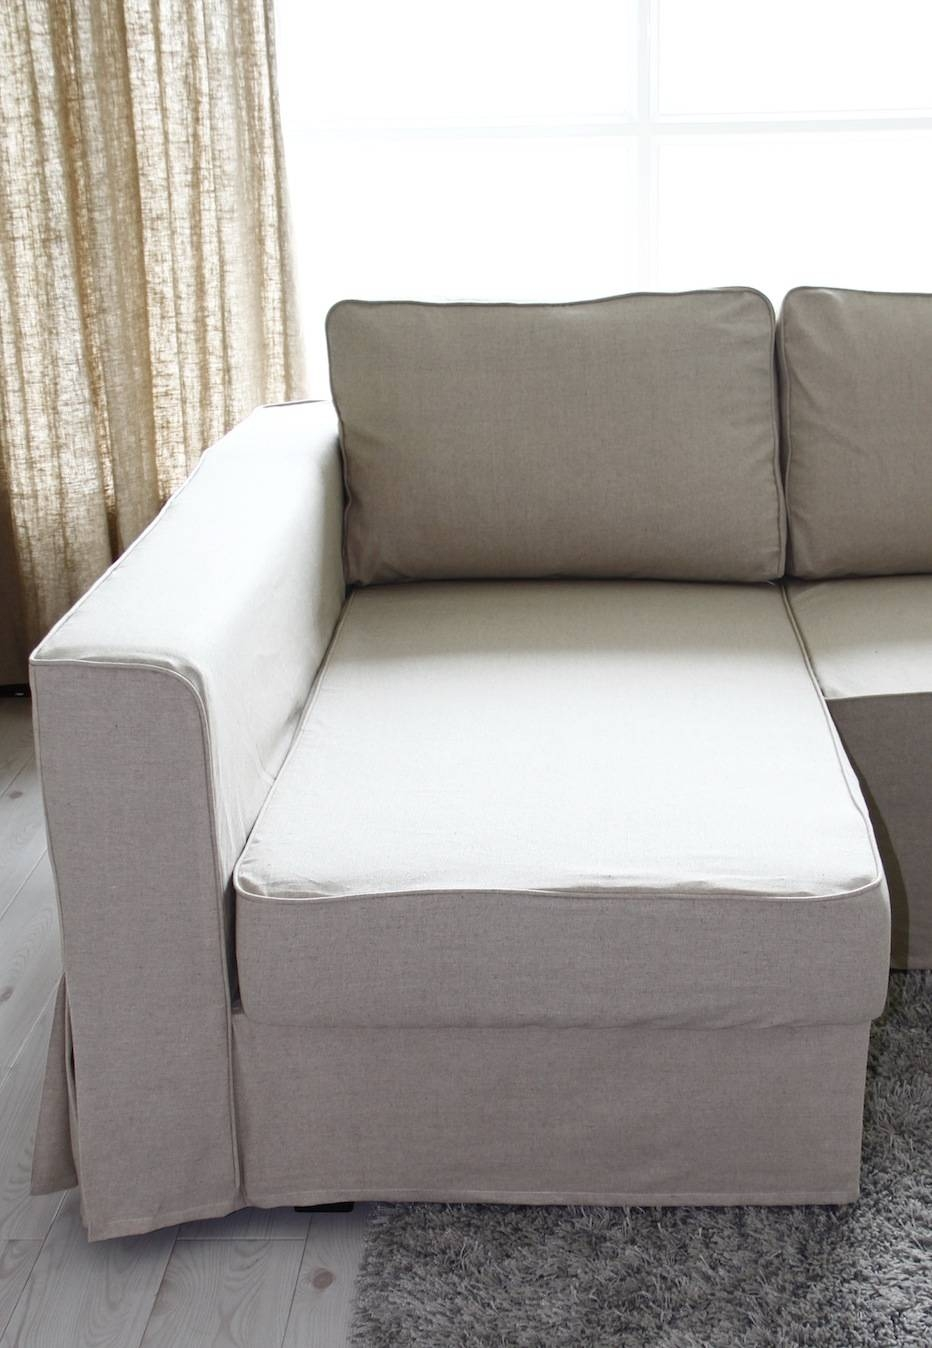 Furniture & Rug: Charming Slipcovers For Sofas With Cushions throughout Armless Couch Slipcovers (Image 5 of 15)